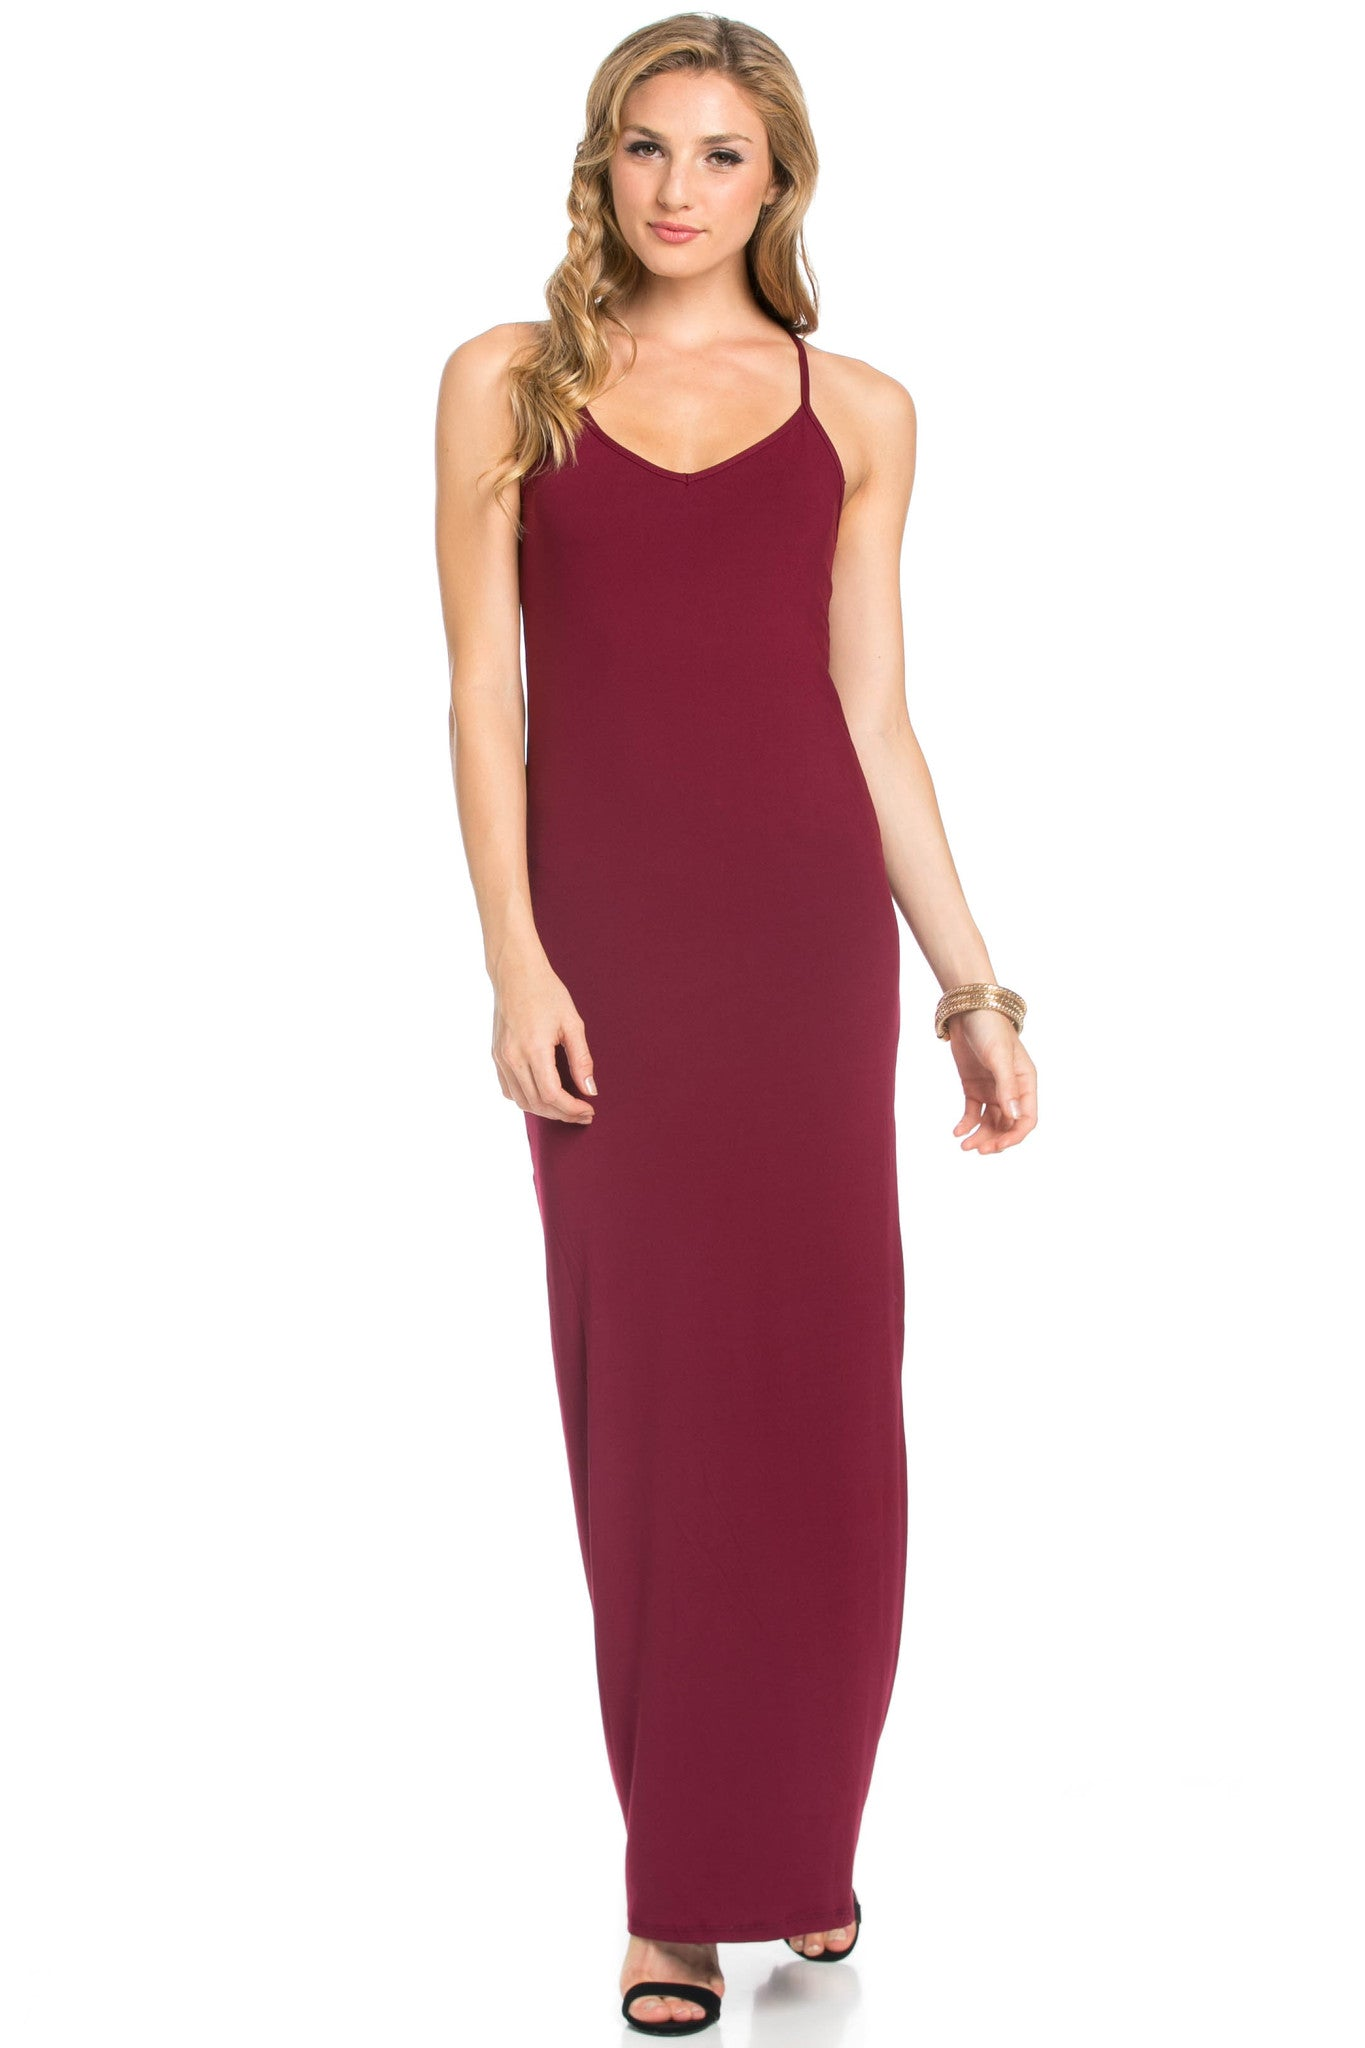 Micro Suede Burgundy Maxi Dress - Dresses - My Yuccie - 1